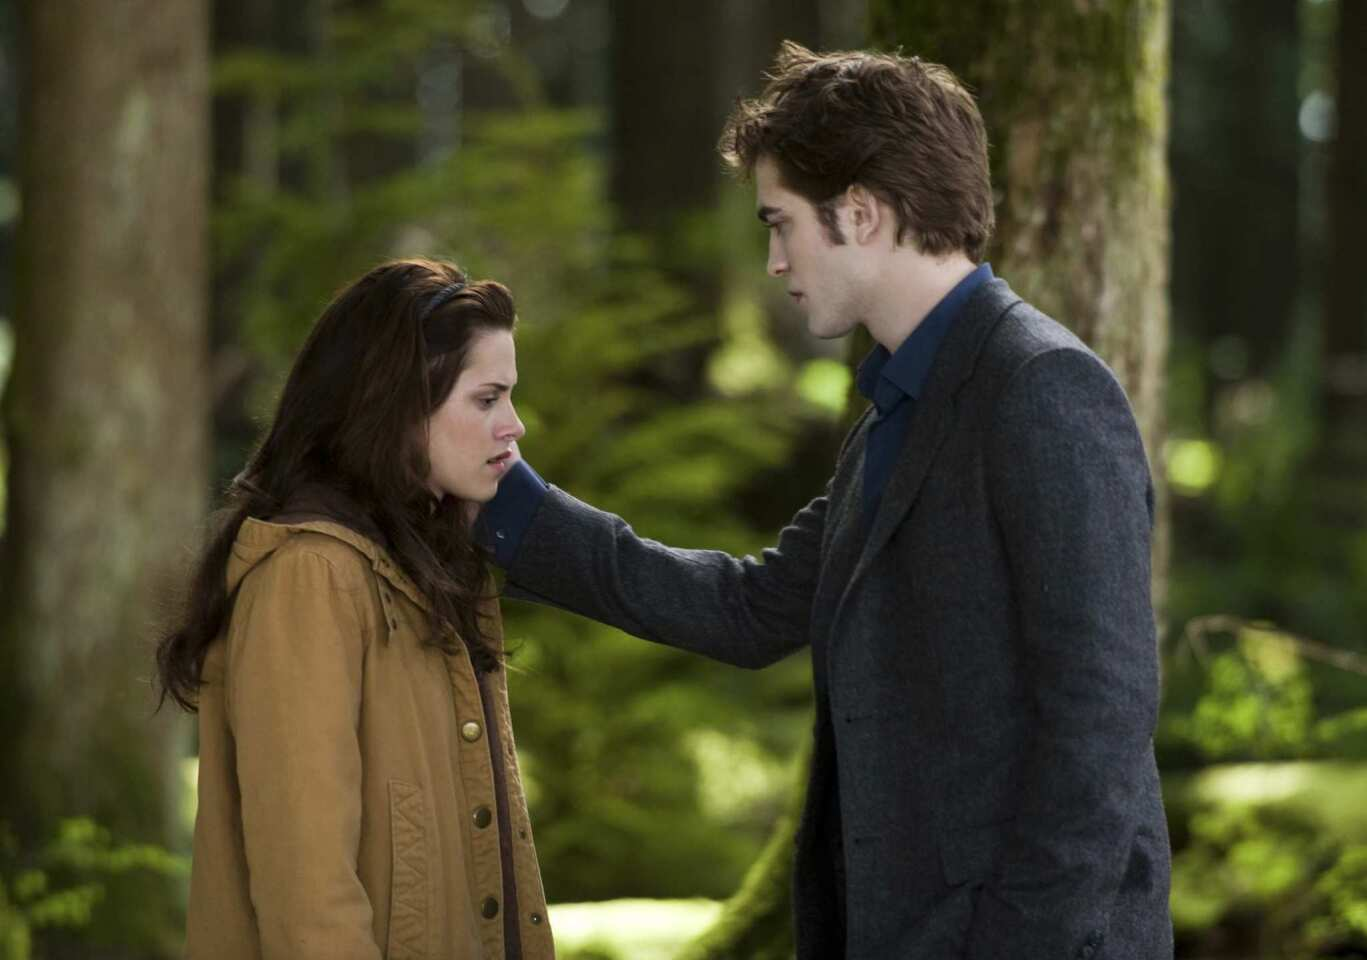 """""""Twilight"""" kicked off the careers of many young Hollywood hopefuls, catapulting them from oblivion to international stardom. As the saga about vampire Edward Cullen and his girlfriend Bella Swan winds down with """"Breaking Dawn,"""" it's time for cast members Robert Pattinson, Kristen Stewart, Taylor Lautner and friends to set out on their own. Now, find out what lies ahead for the """"Twilight"""" cast."""